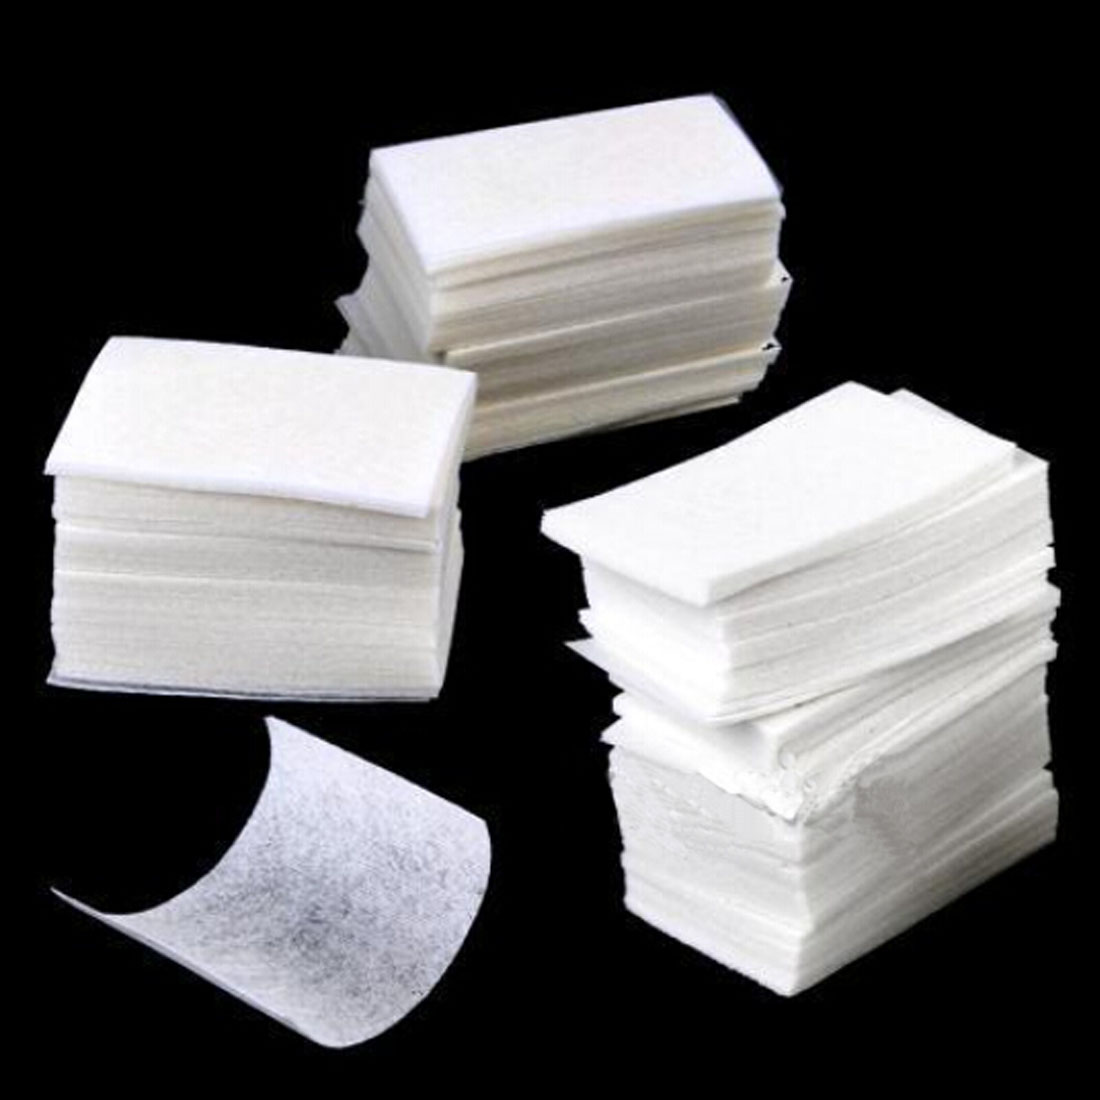 400pcs/set Nail Art wipe Manicure Polish gel nail Wipes Cotton High Quality Lint Cotton Pads Paper Acrylic Gel Tips ветрозащитная куртка nike zenit 2018 19 nike цвет серый